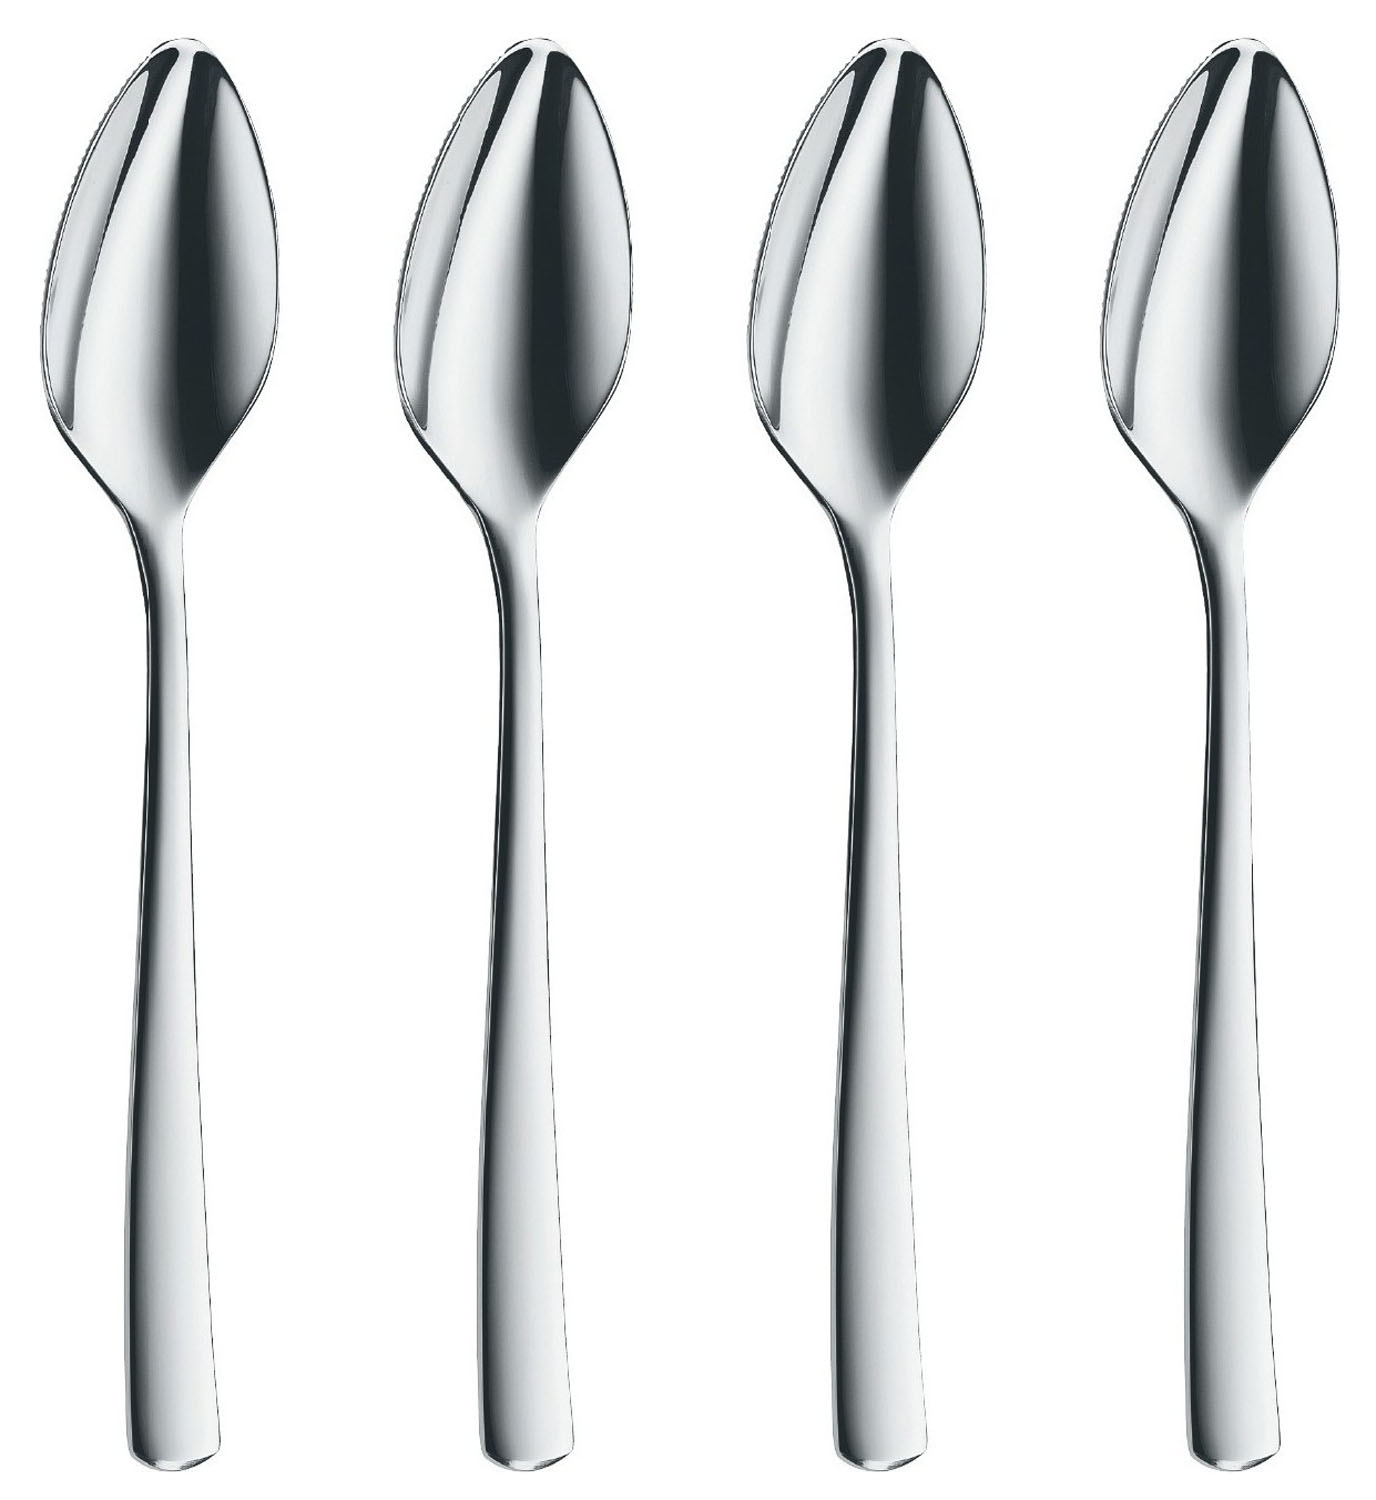 WMF Bistro Stainless Steel Grapefruit Spoons